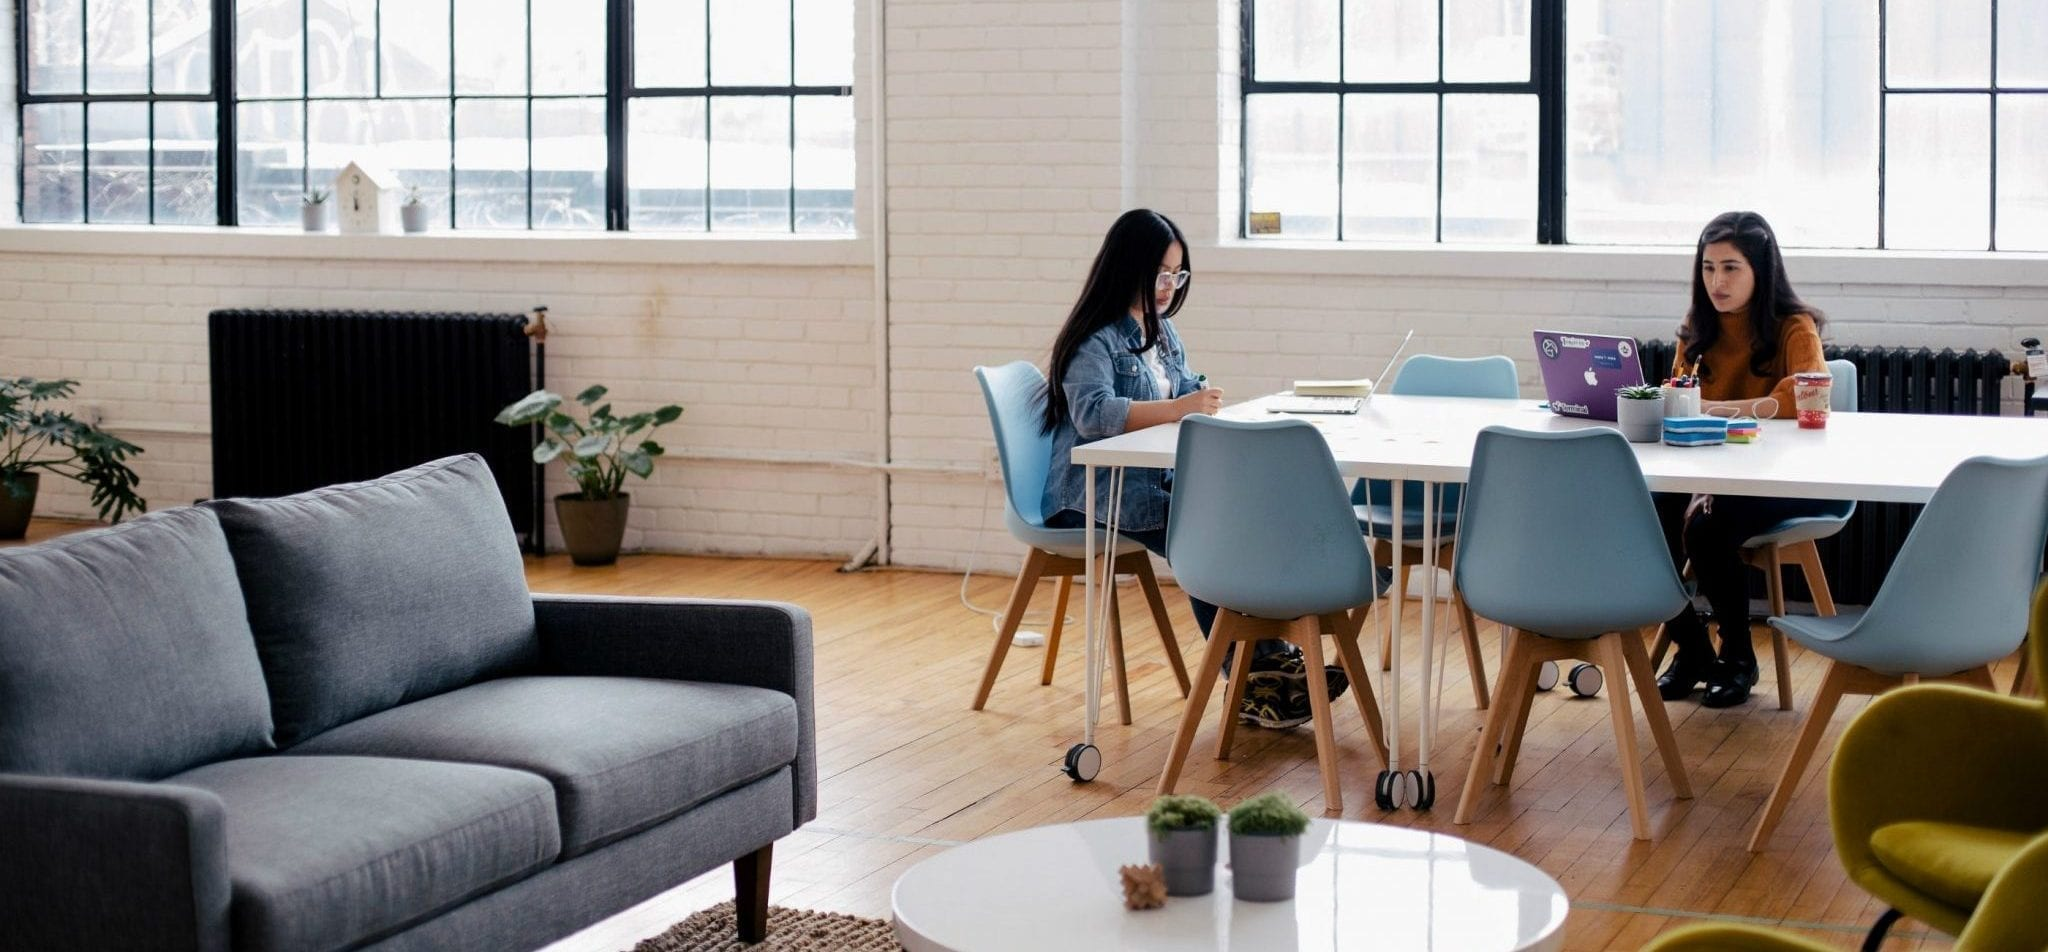 flexible workspace human centred